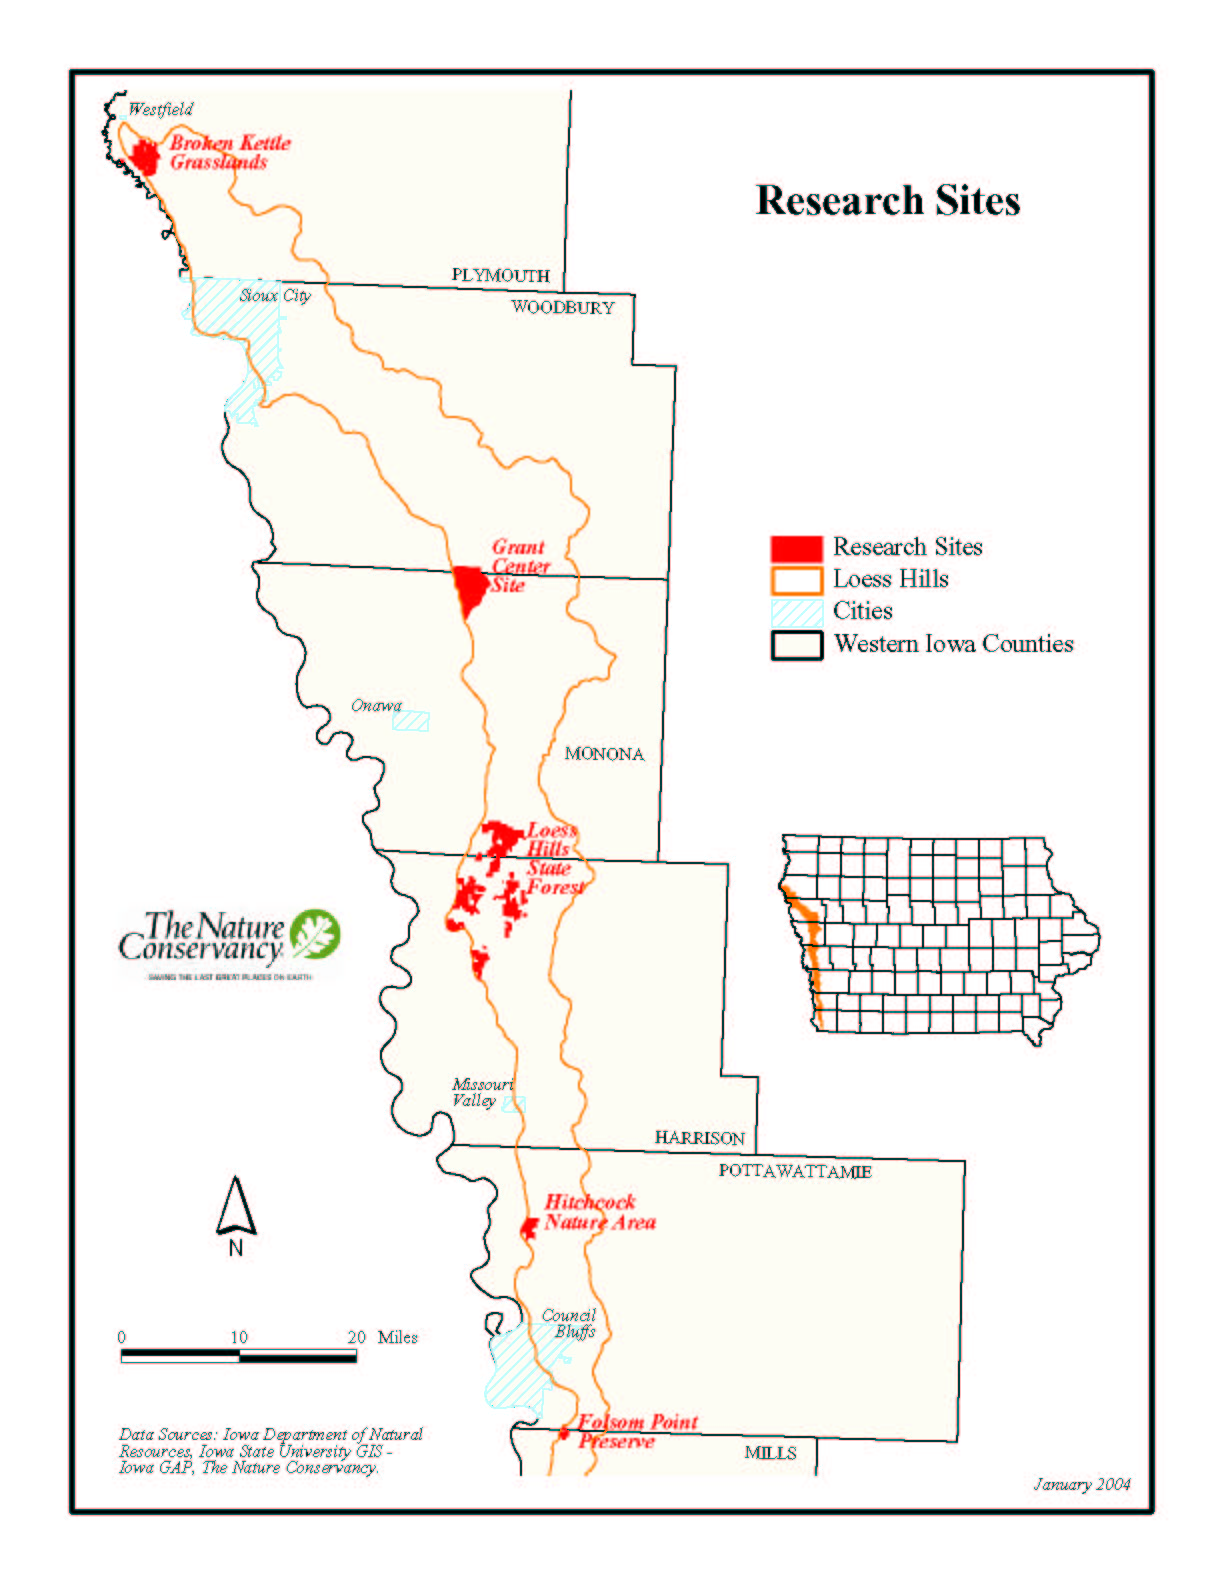 Map of Research Sites